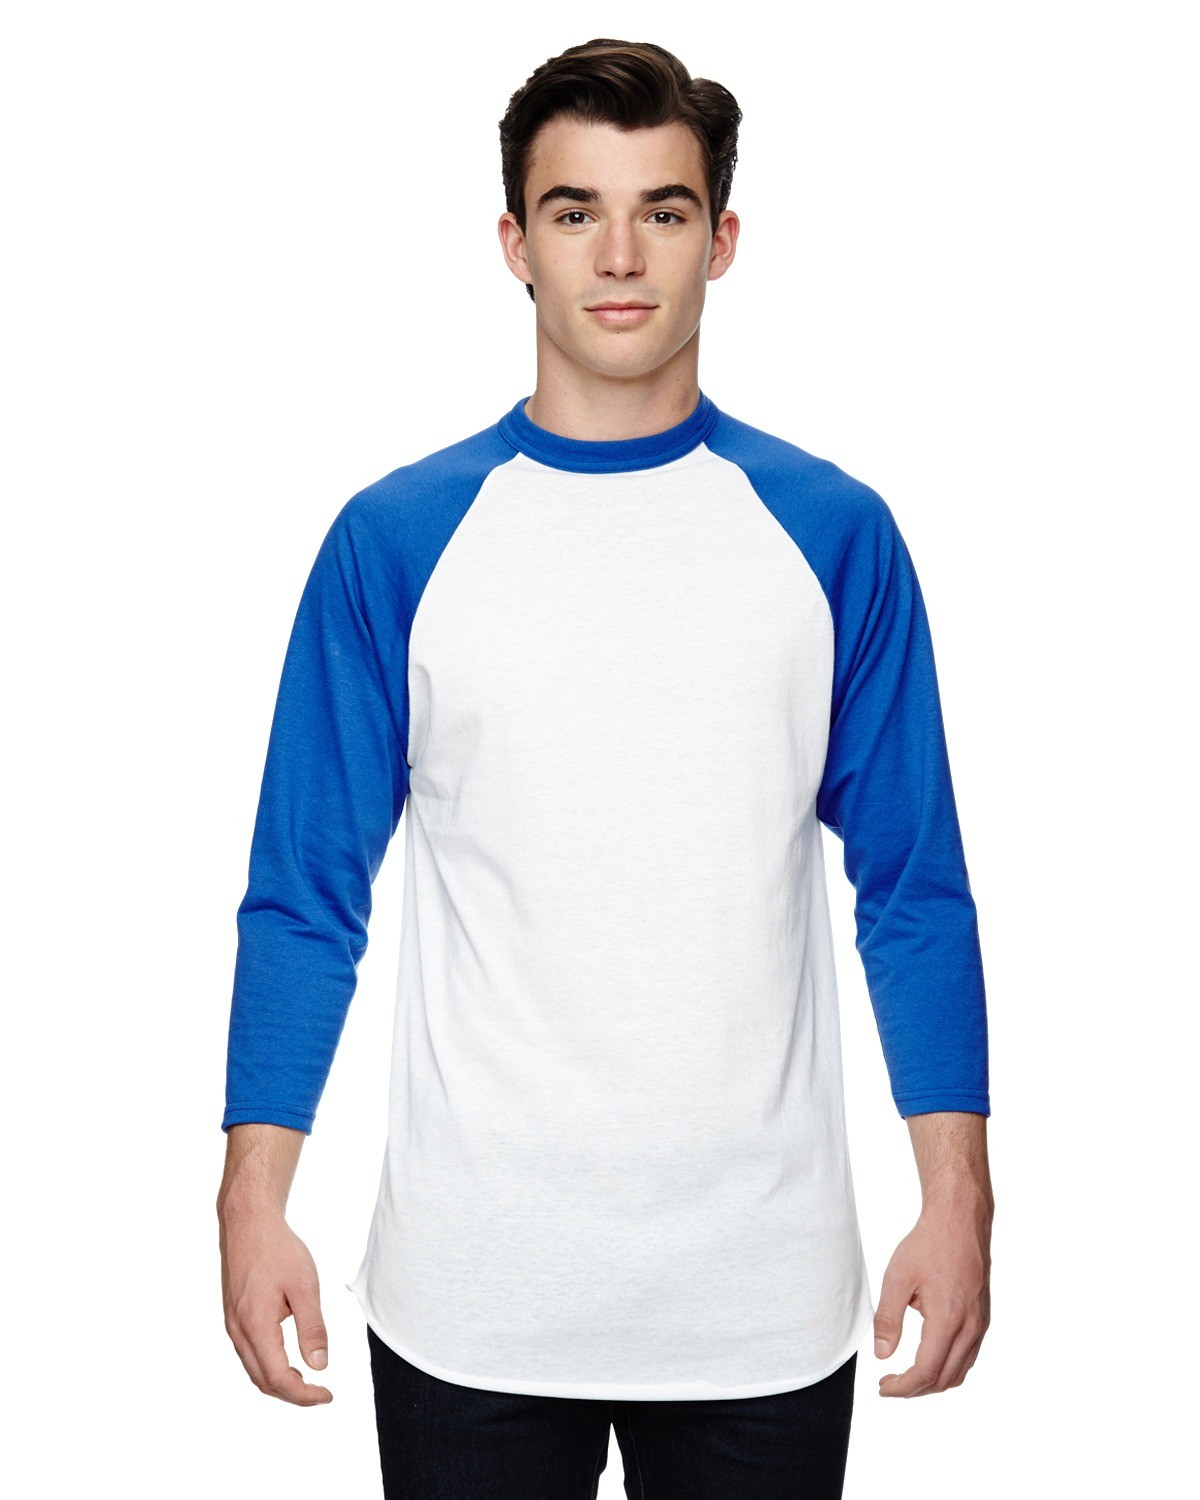 AG4420 Augusta Sportswear WHITE/ROYAL